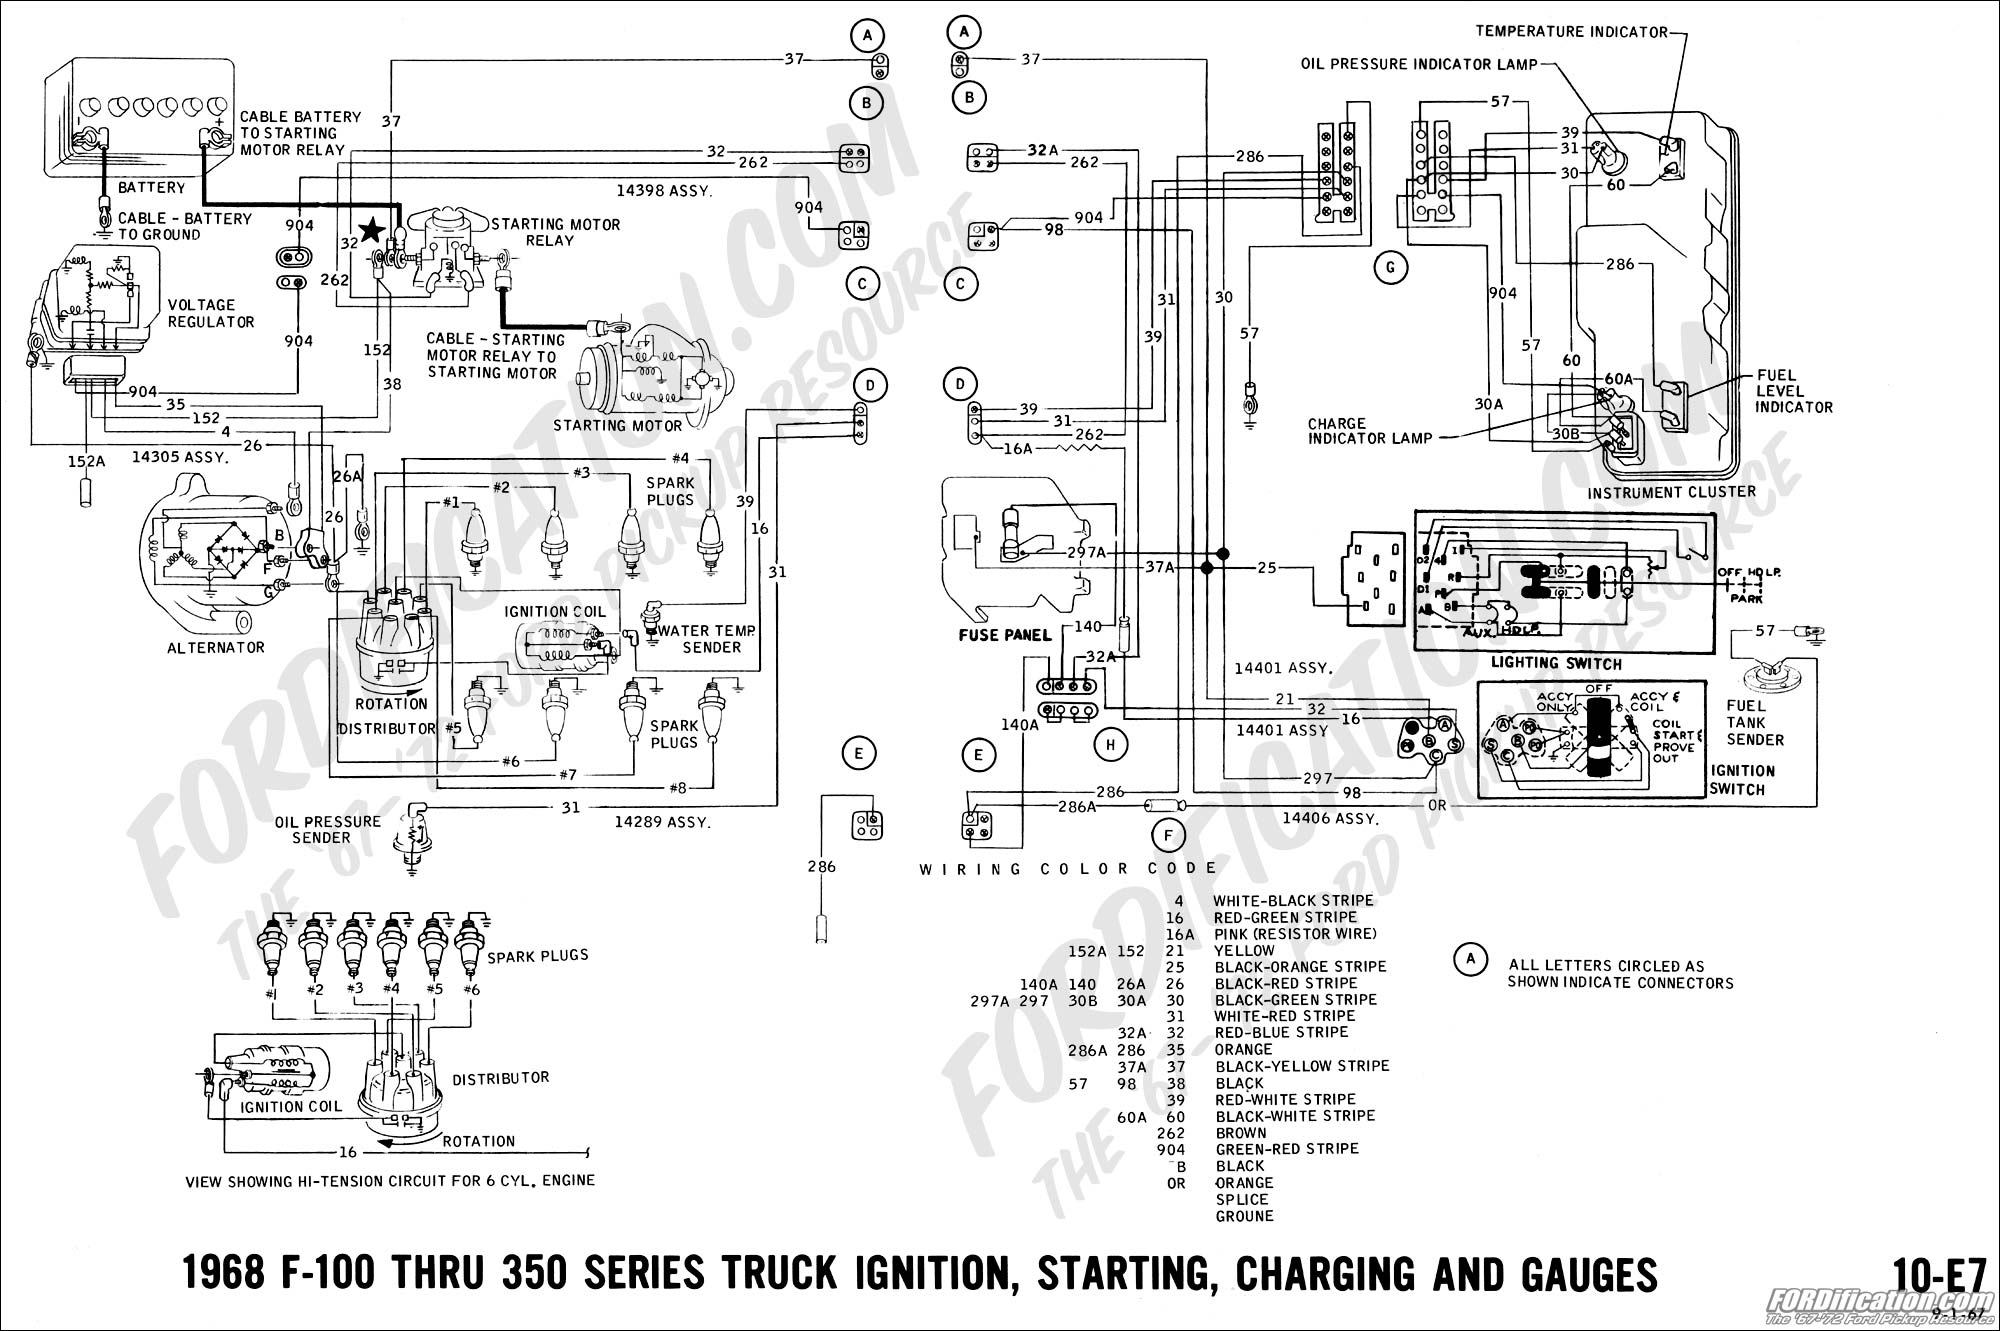 1984 ford f 150 alternator wiring images wiring diagram  1984 ford f 150 302 alternator wiring diagram wiring diagram